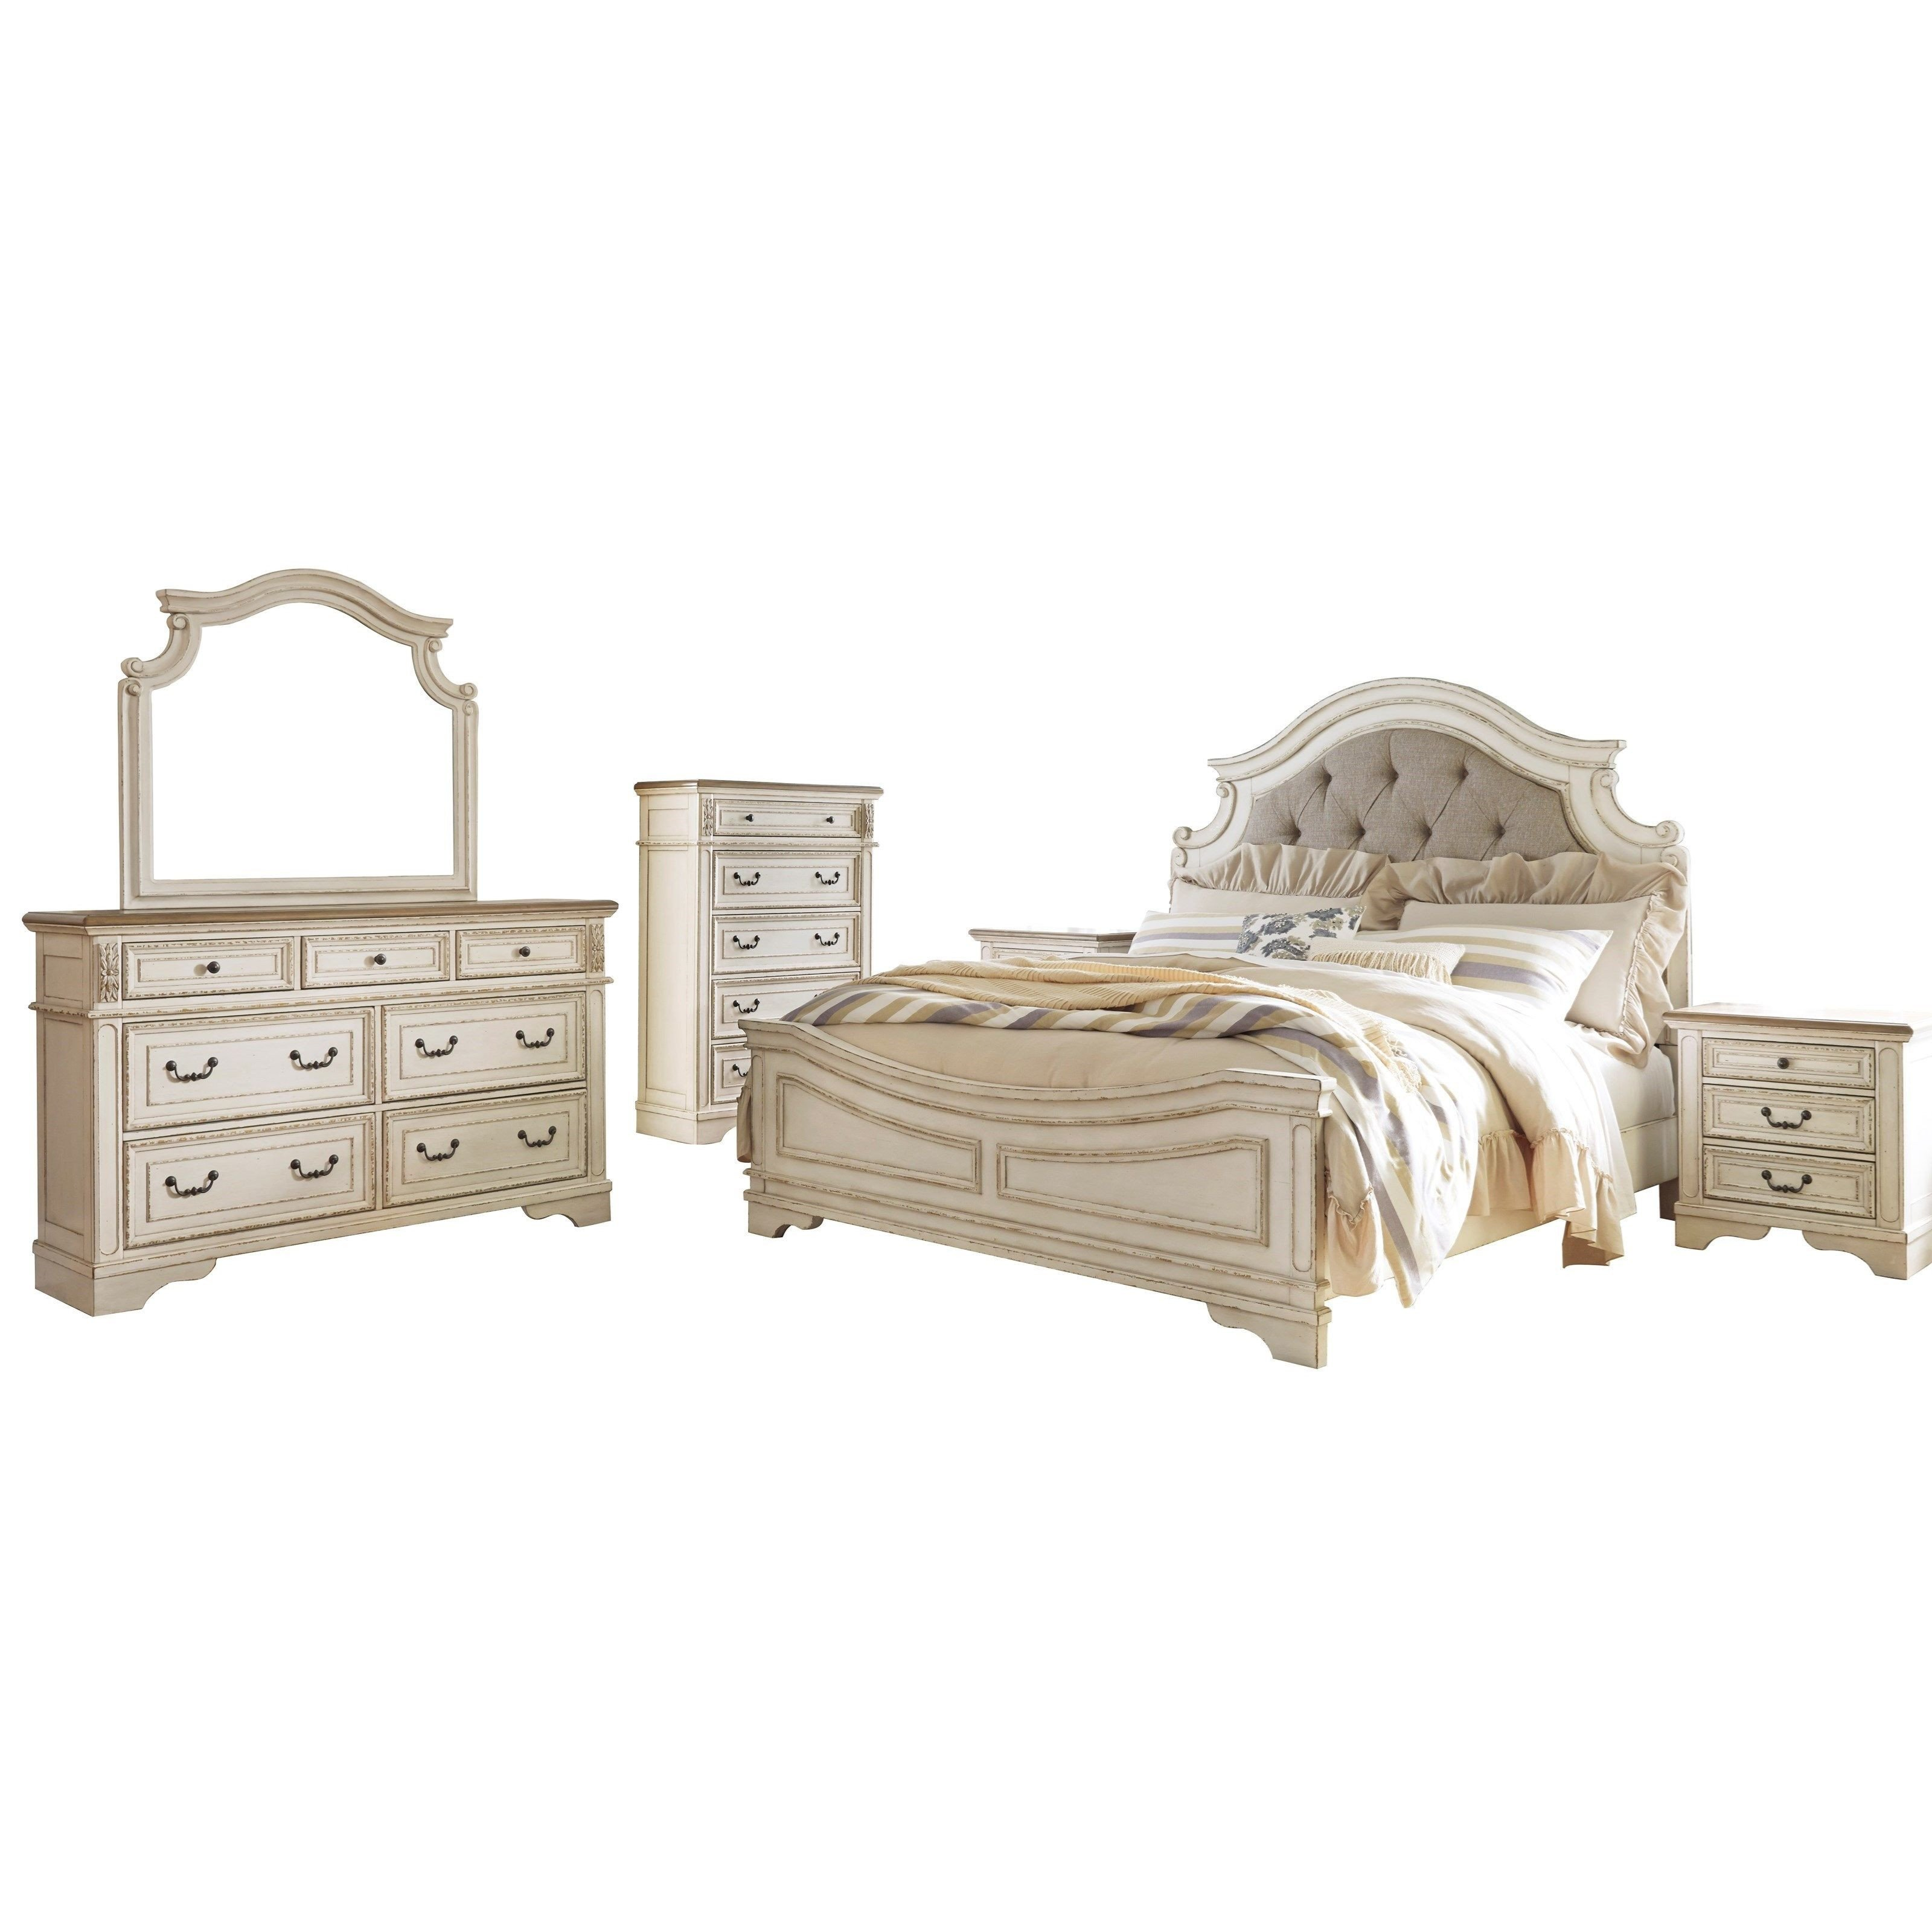 Bedroom Set with Mattress New Realyn Queen Bedroom Group by Signature Design by ashley In